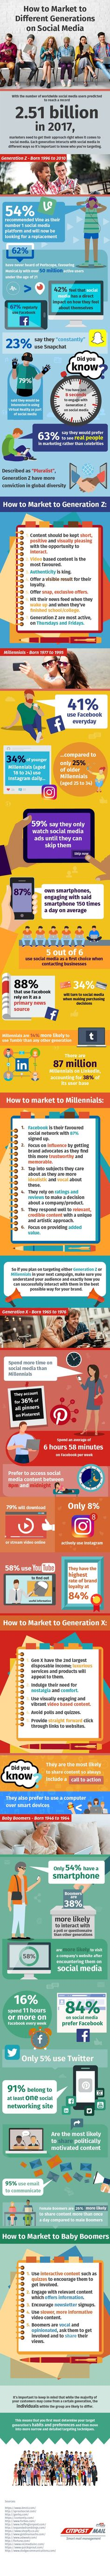 How to Market to Different Generations on Social Media Infographic